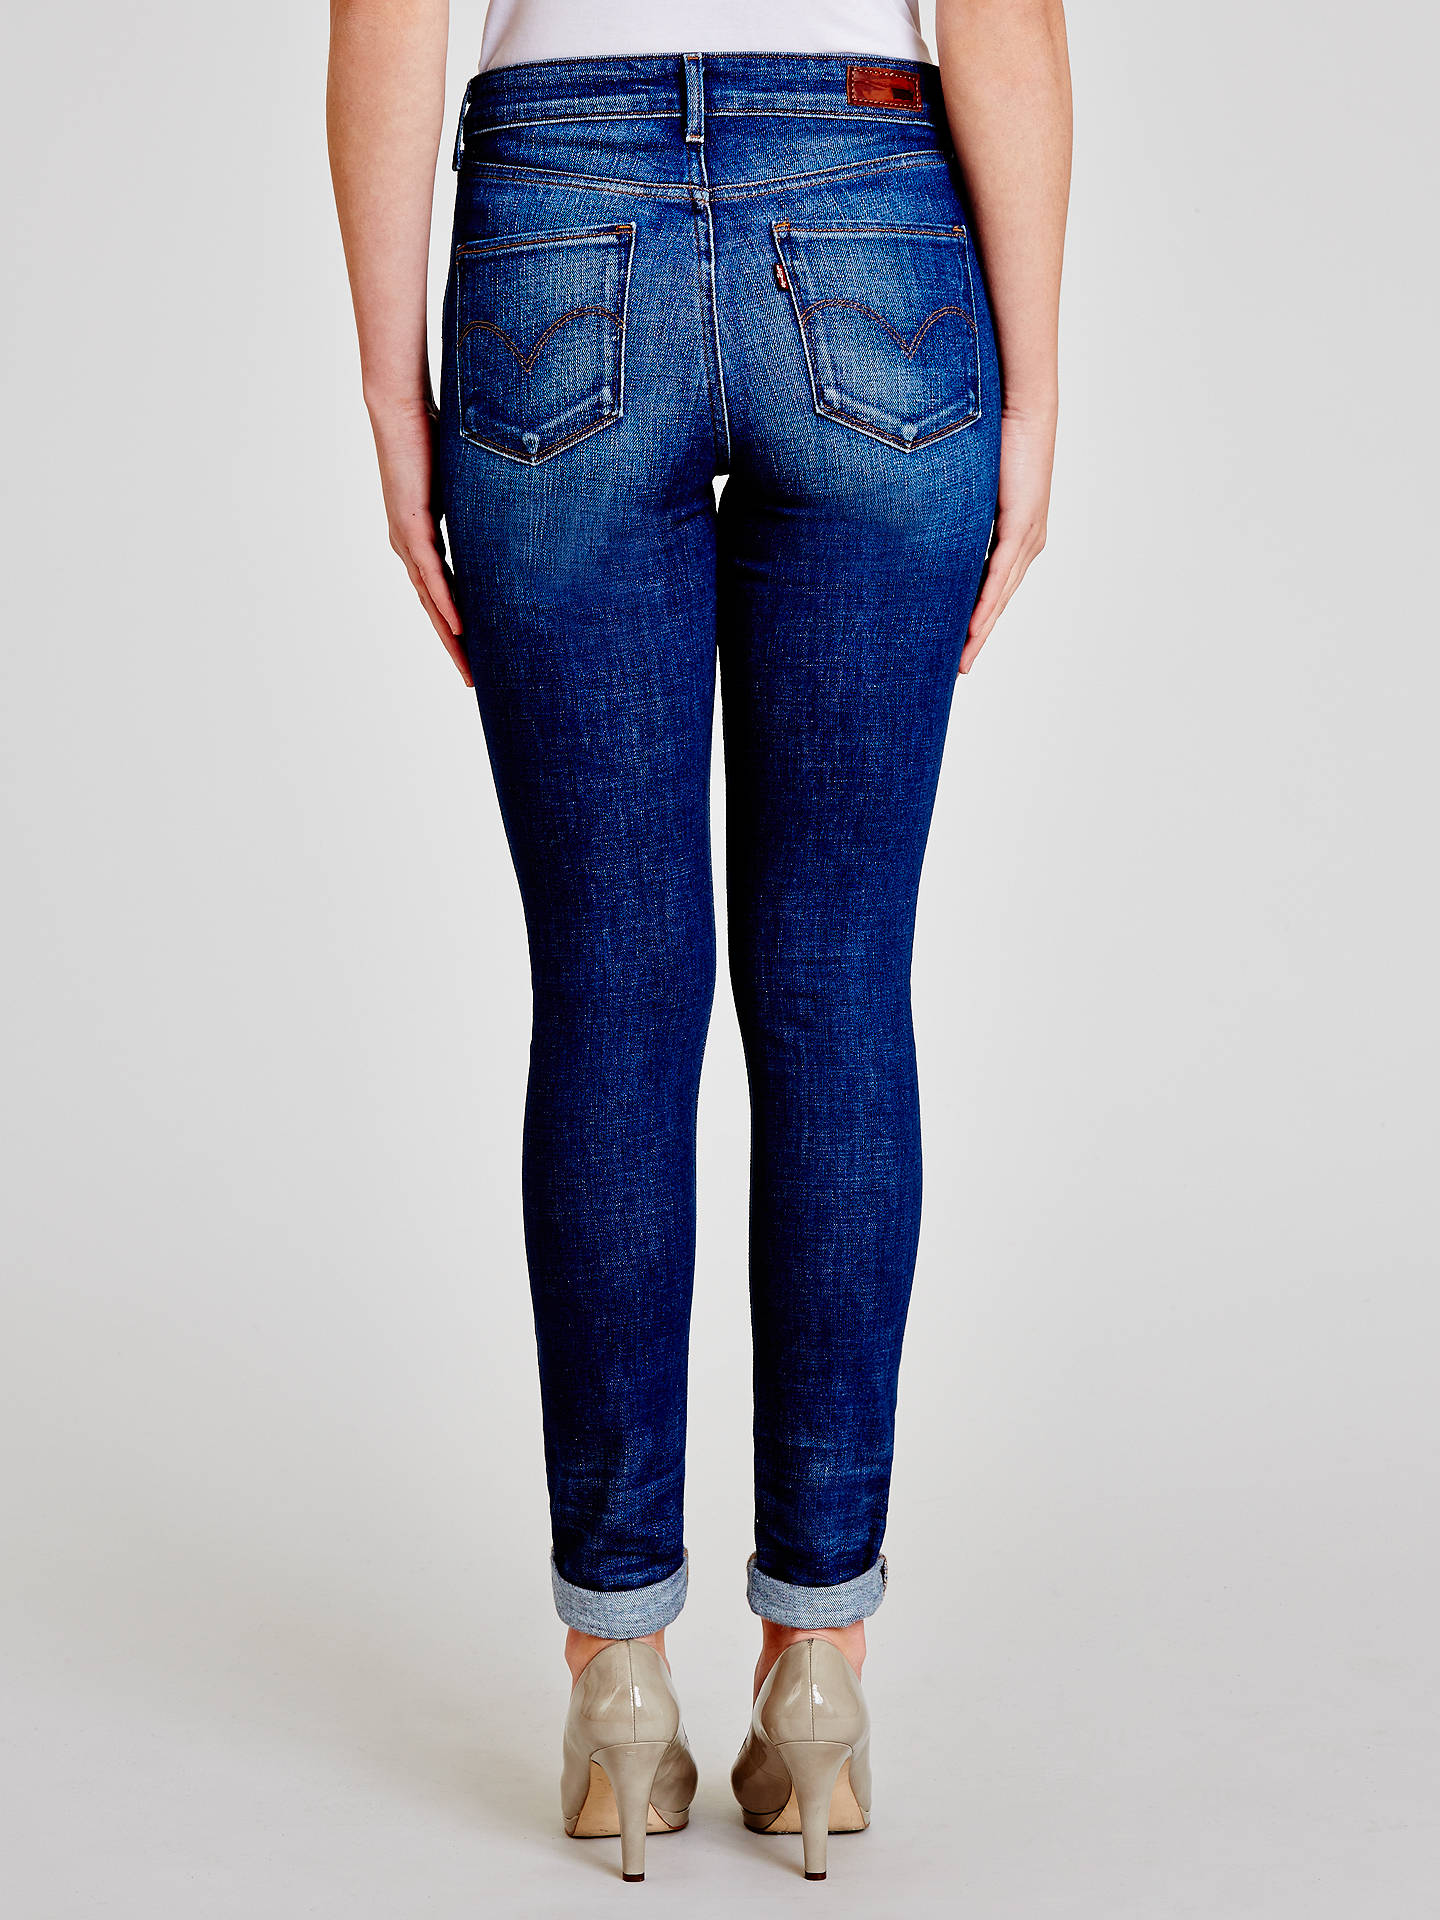 "Buy Levi's Hi-Rise Skinny Jeans 32"", Reservoir, W27/L32 Online at johnlewis.com"